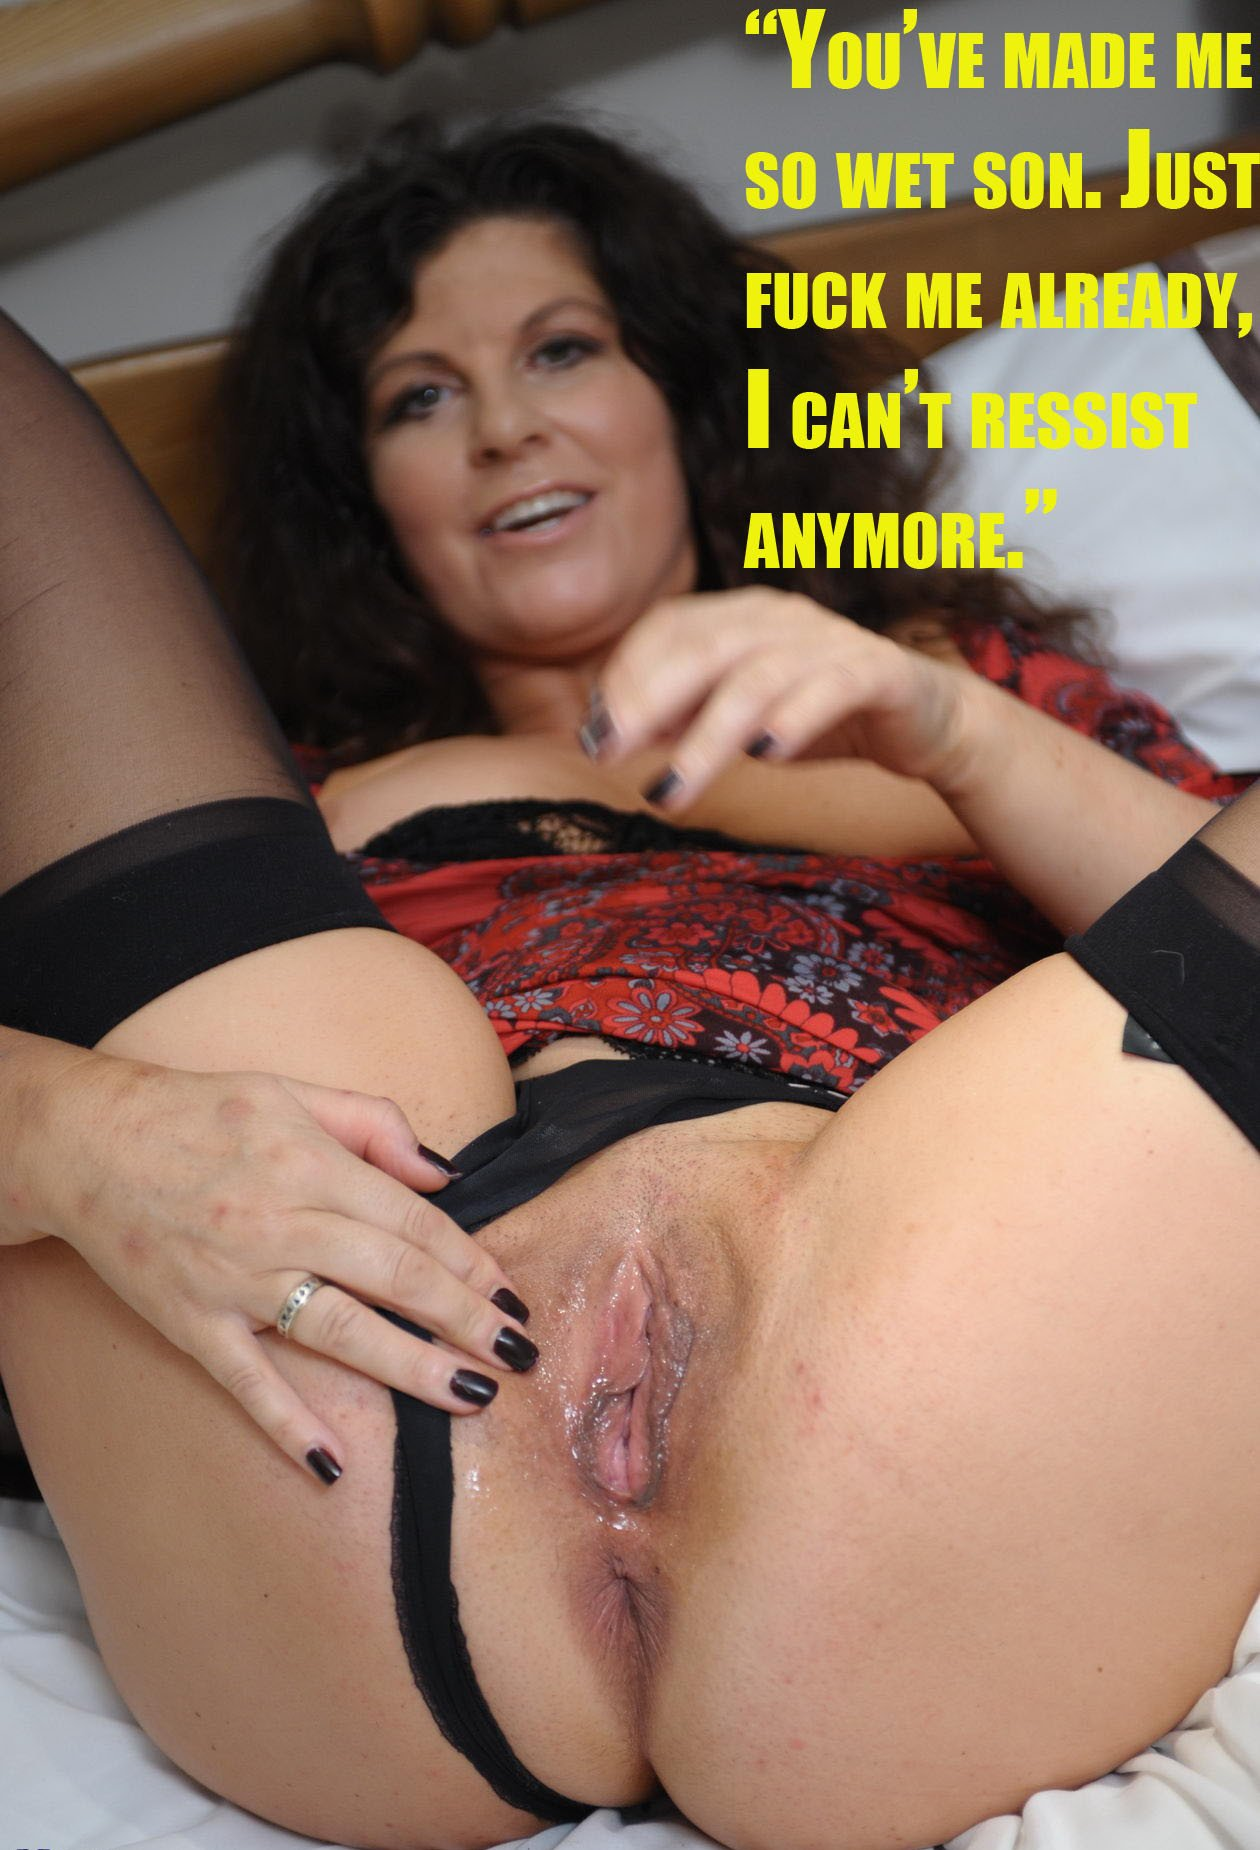 Mom Friend Son Threesome